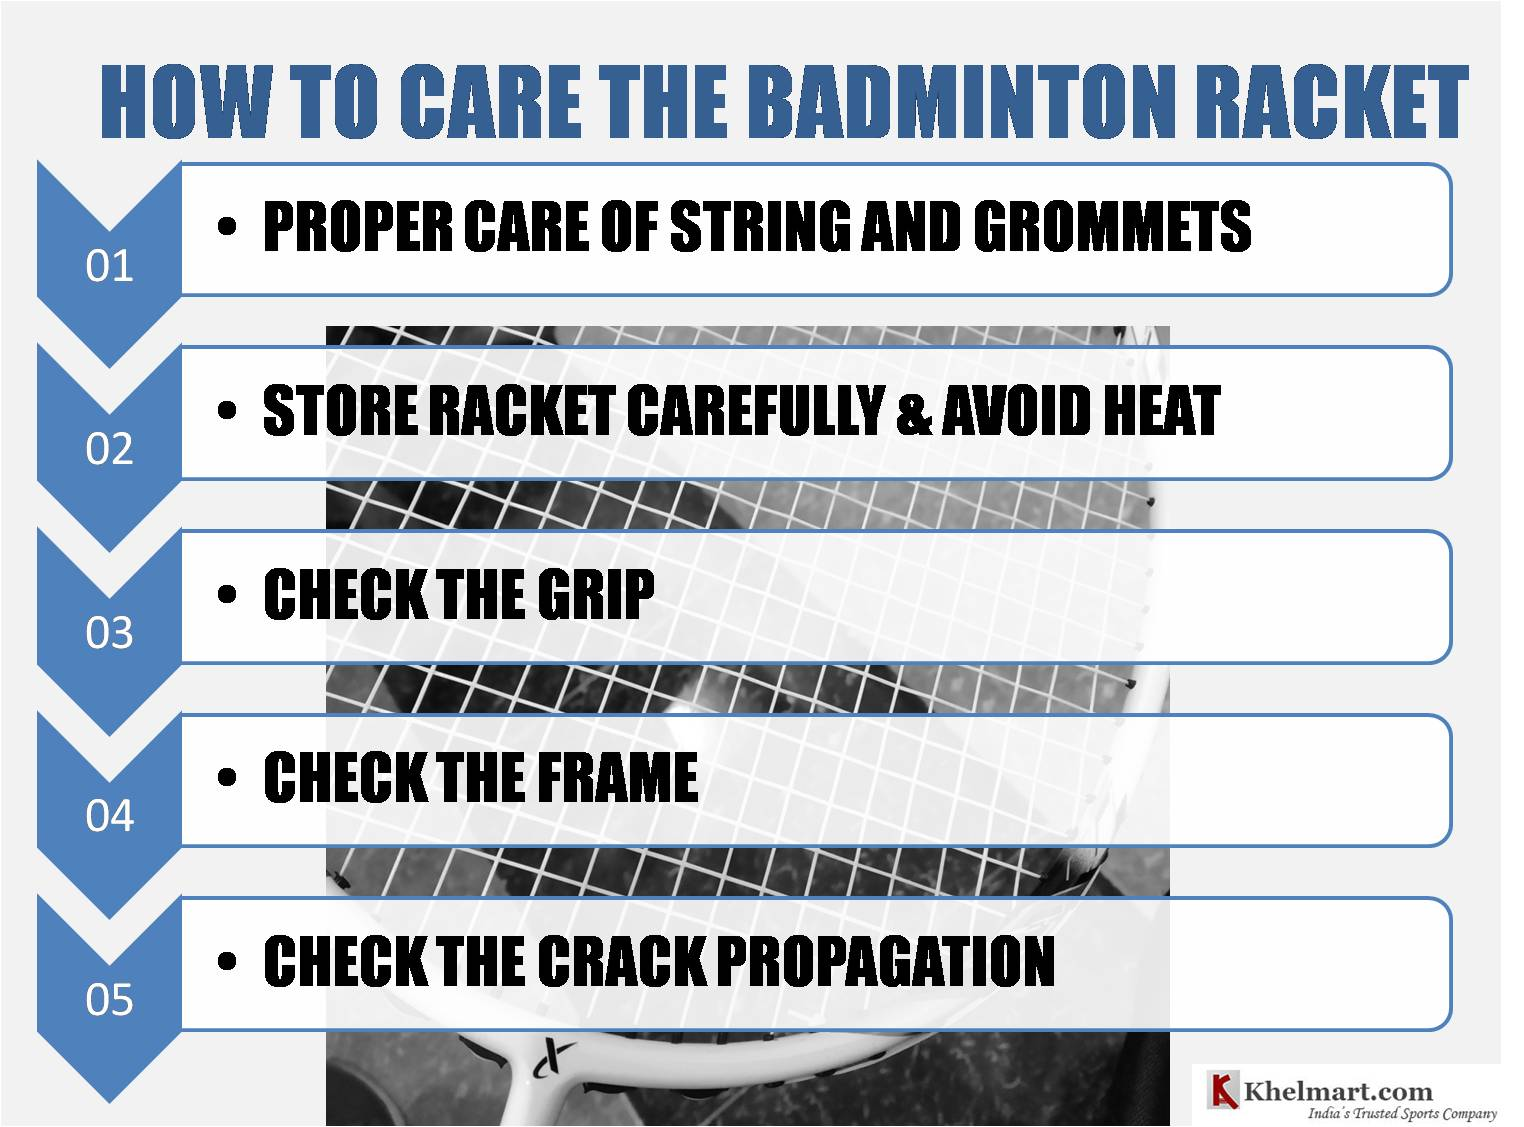 How_to_take_care_of_badminton_racket_khelmart_Guide.jpg